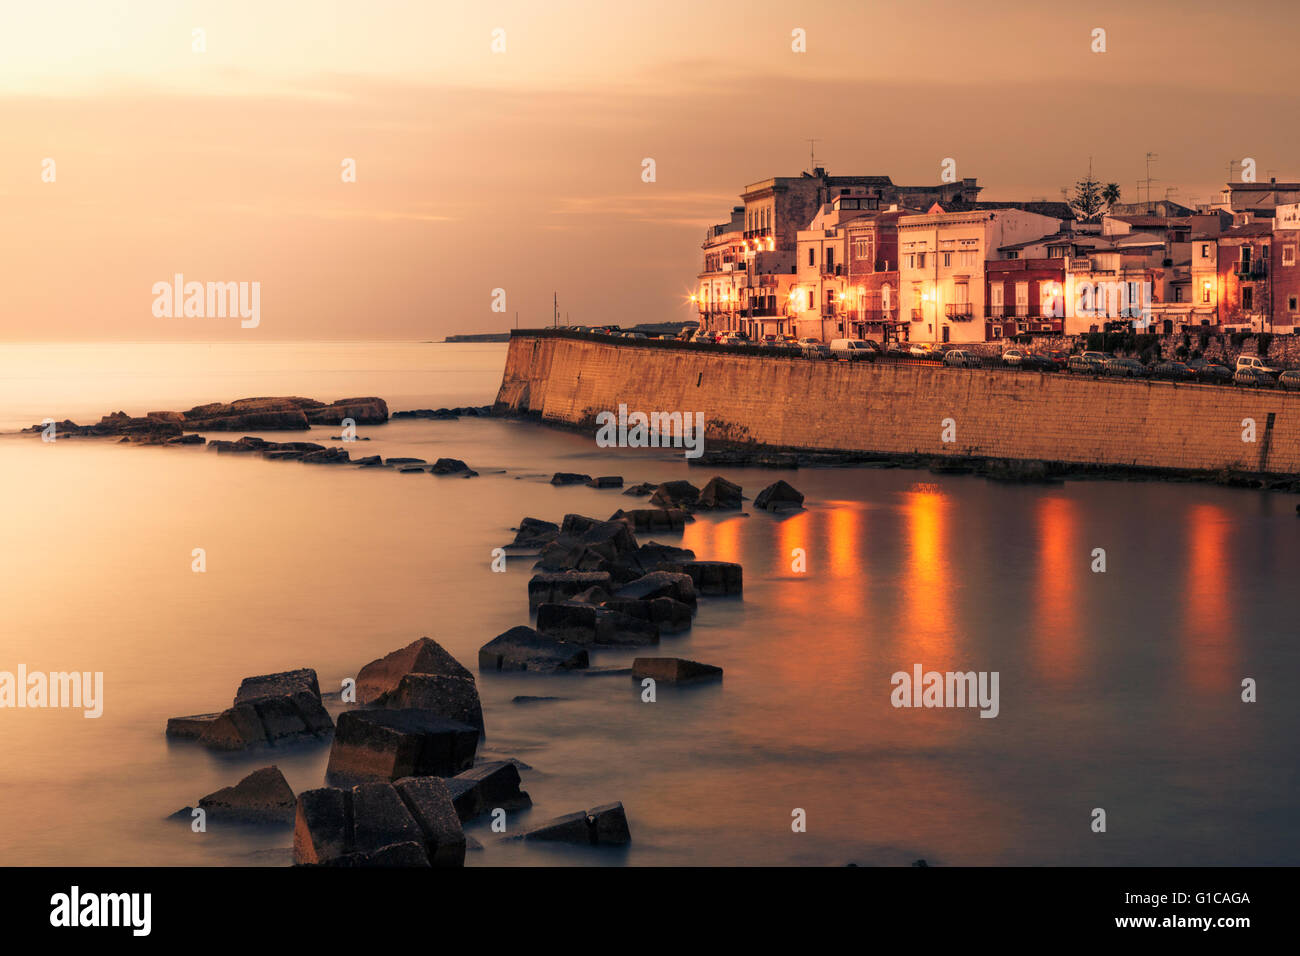 Waterfront of Ortygia at dawn, Syracuse, Italy. - Stock Image